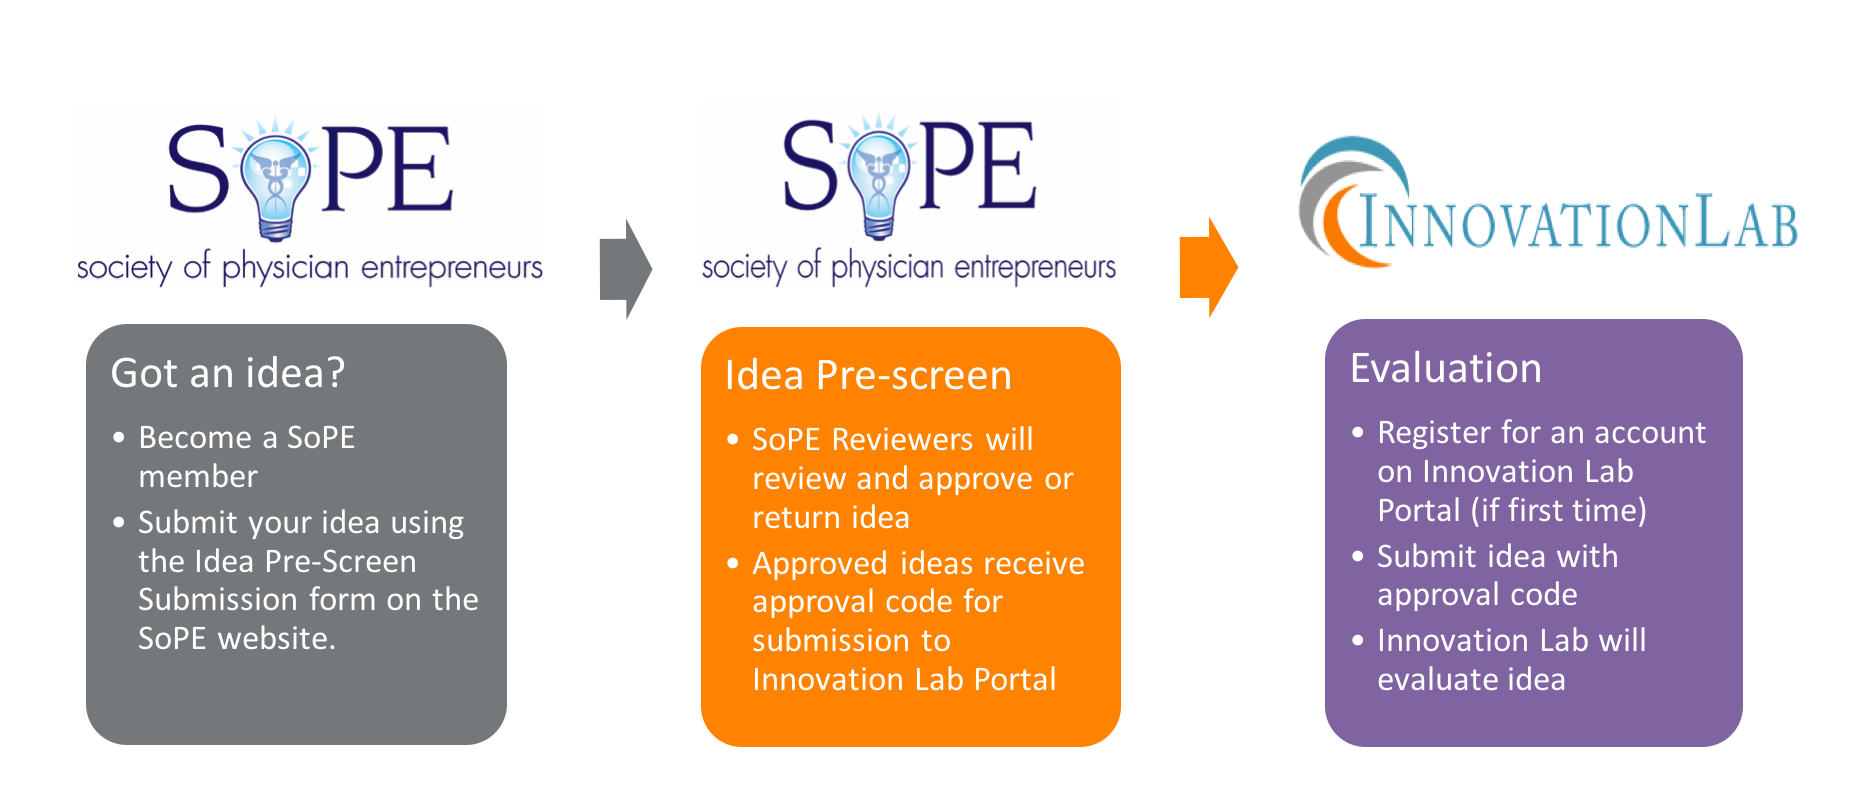 https://sopenet.org/wp/wp-content/uploads/2019/09/SOPE-Process.png